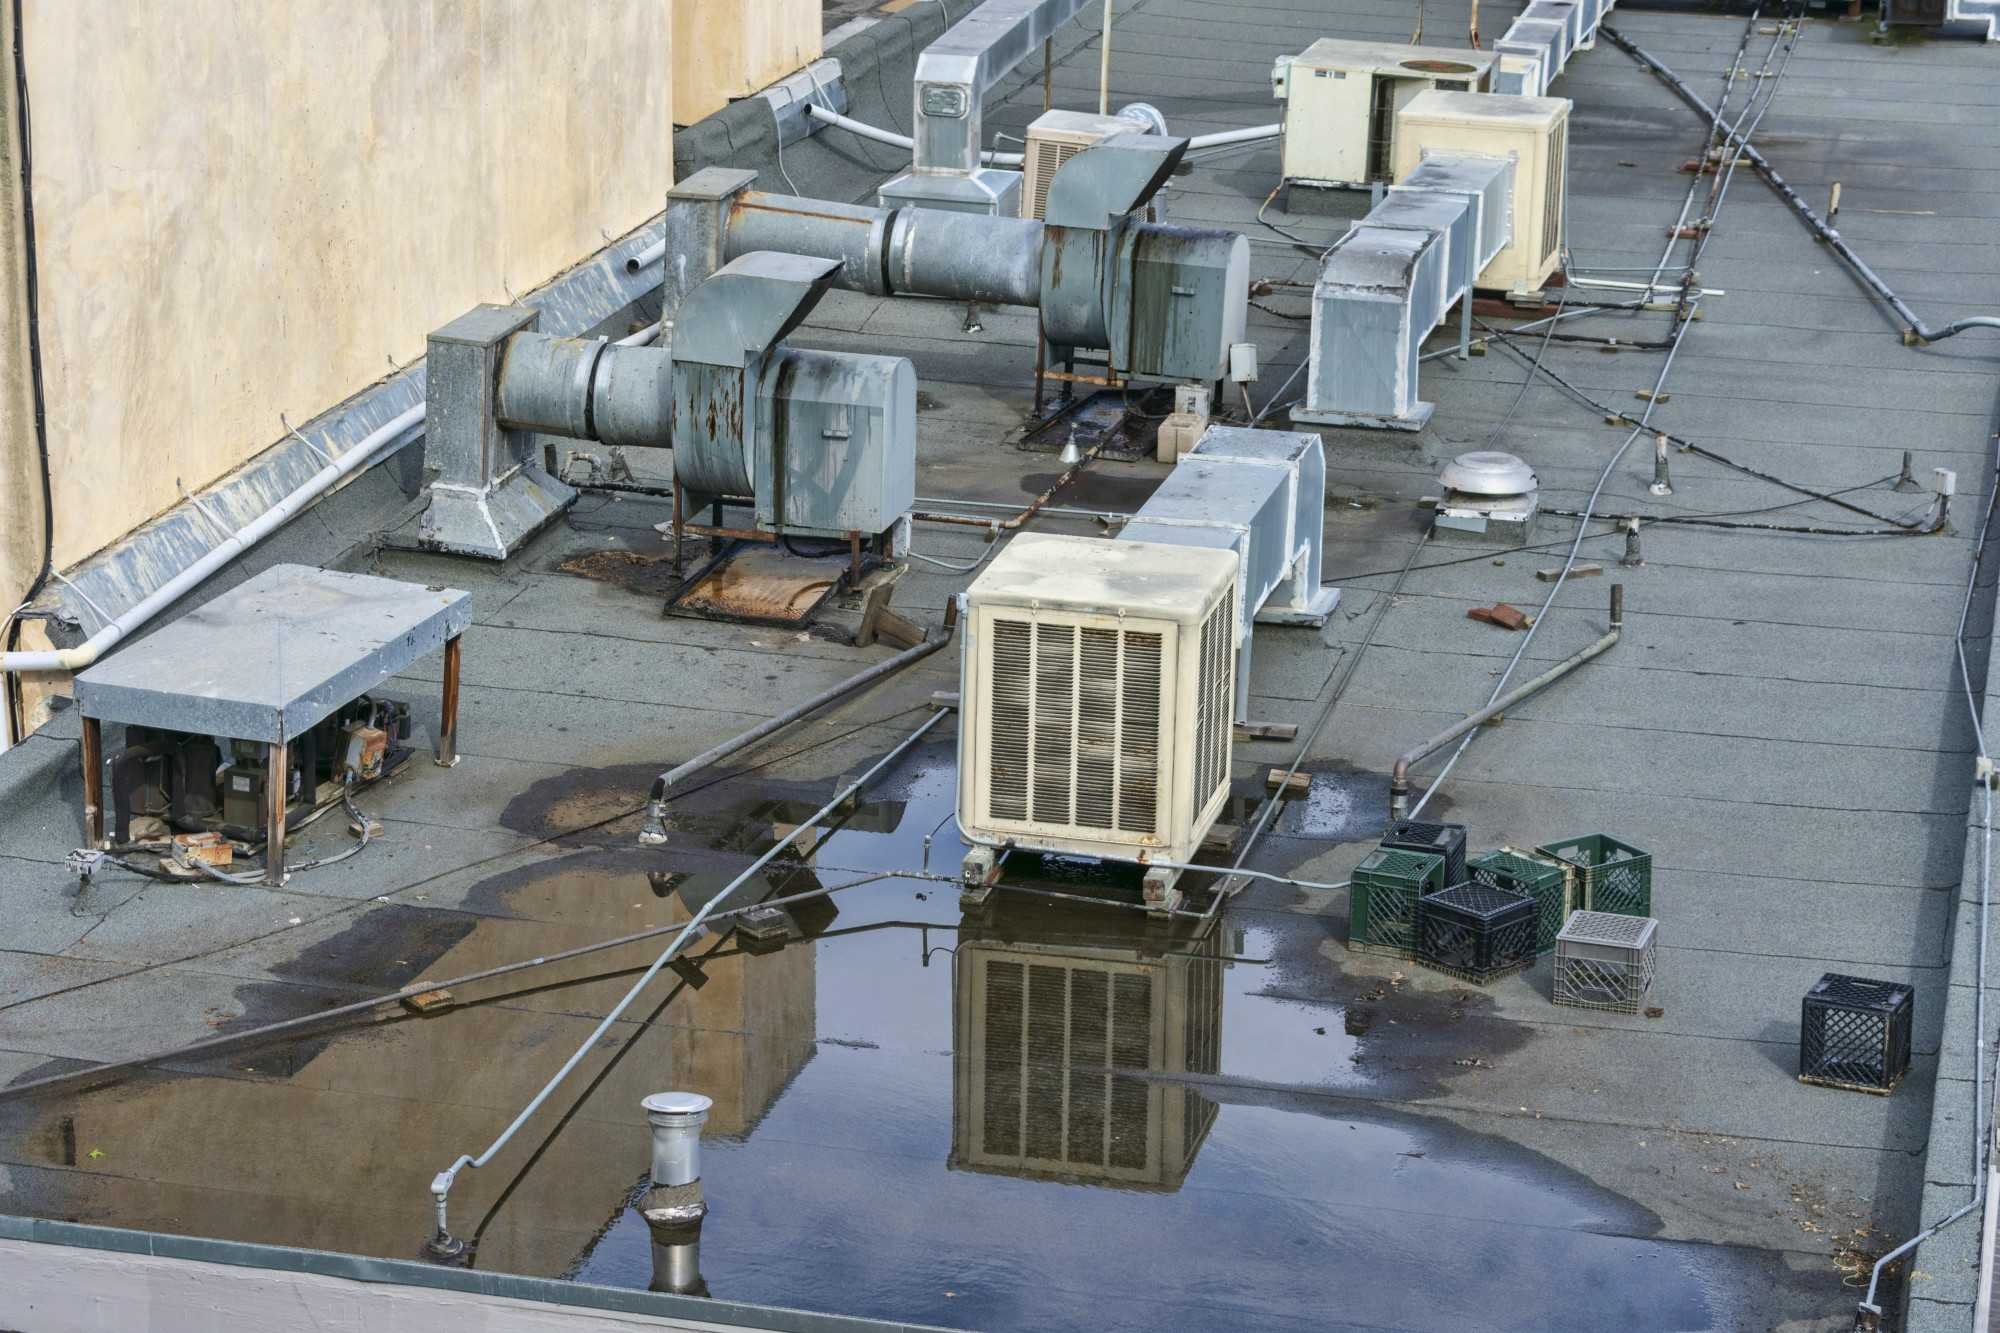 The Mighty Benefits of Routine Commercial Roof Maintenance